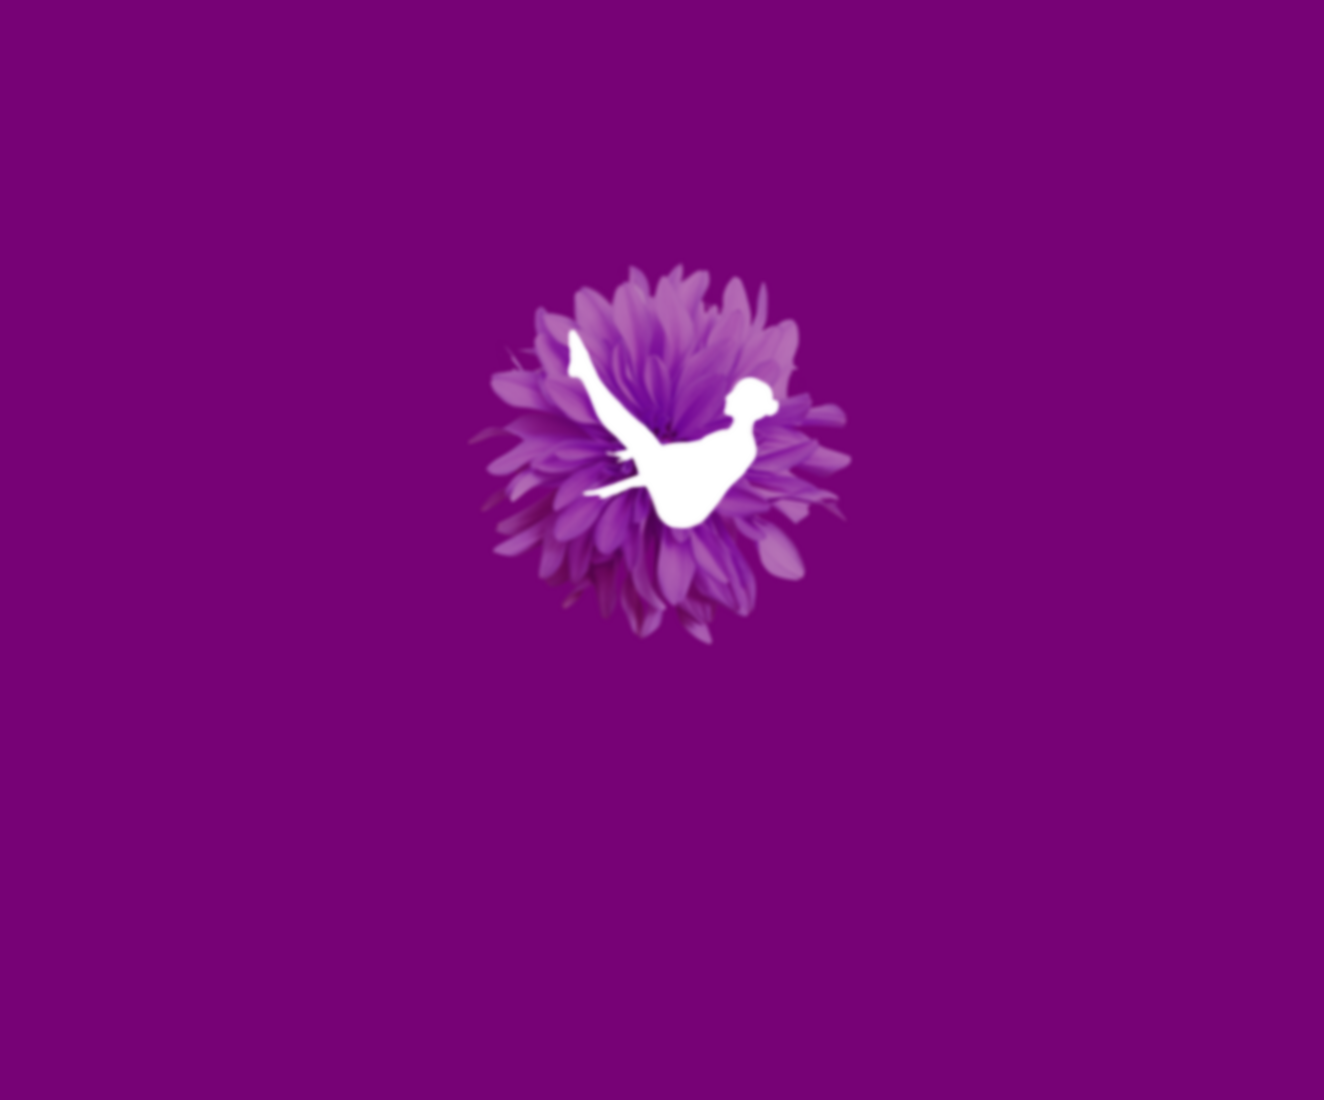 Pilates by julie logo as well as a purple flower with a pilates figure